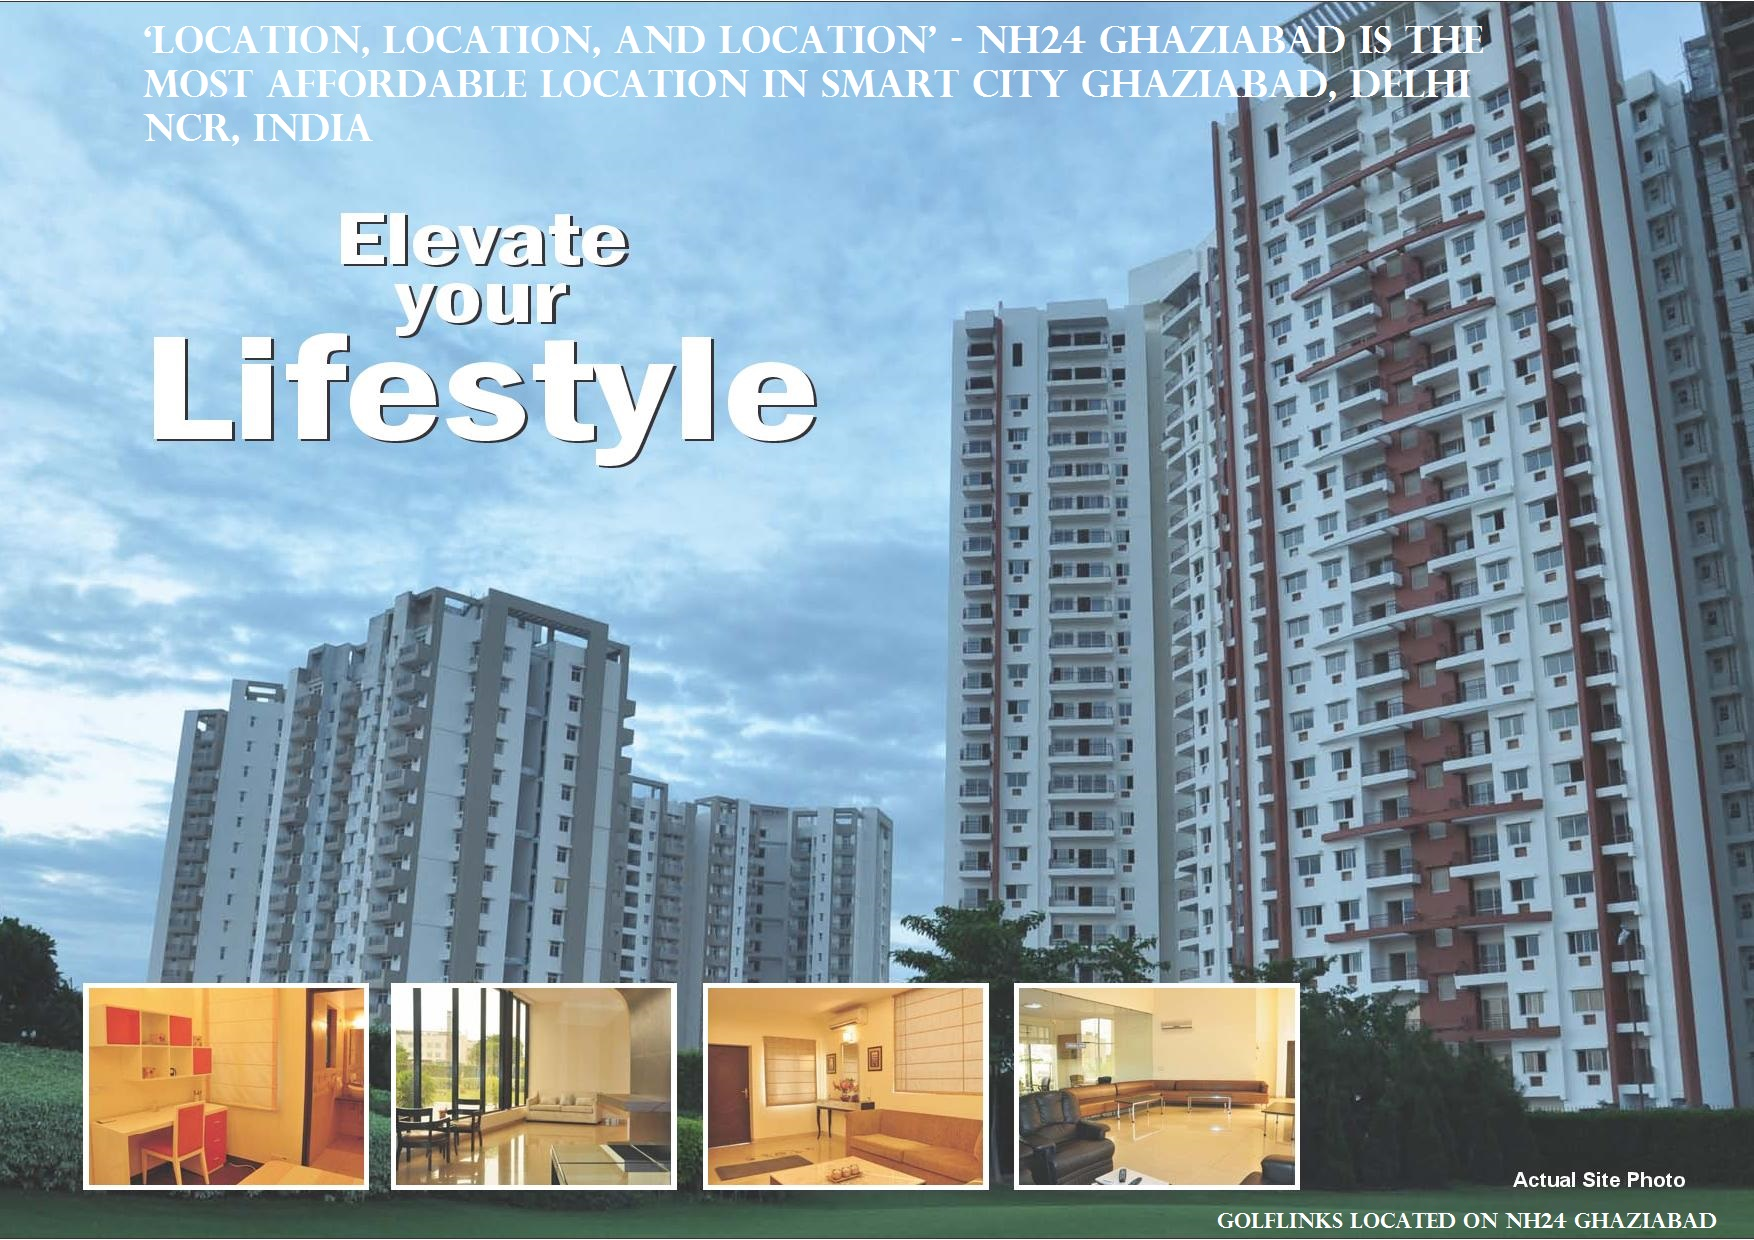 NH24 Ghaziabad is the Most Affordable Location in Smart City Ghaziabad, Delhi NCR, India